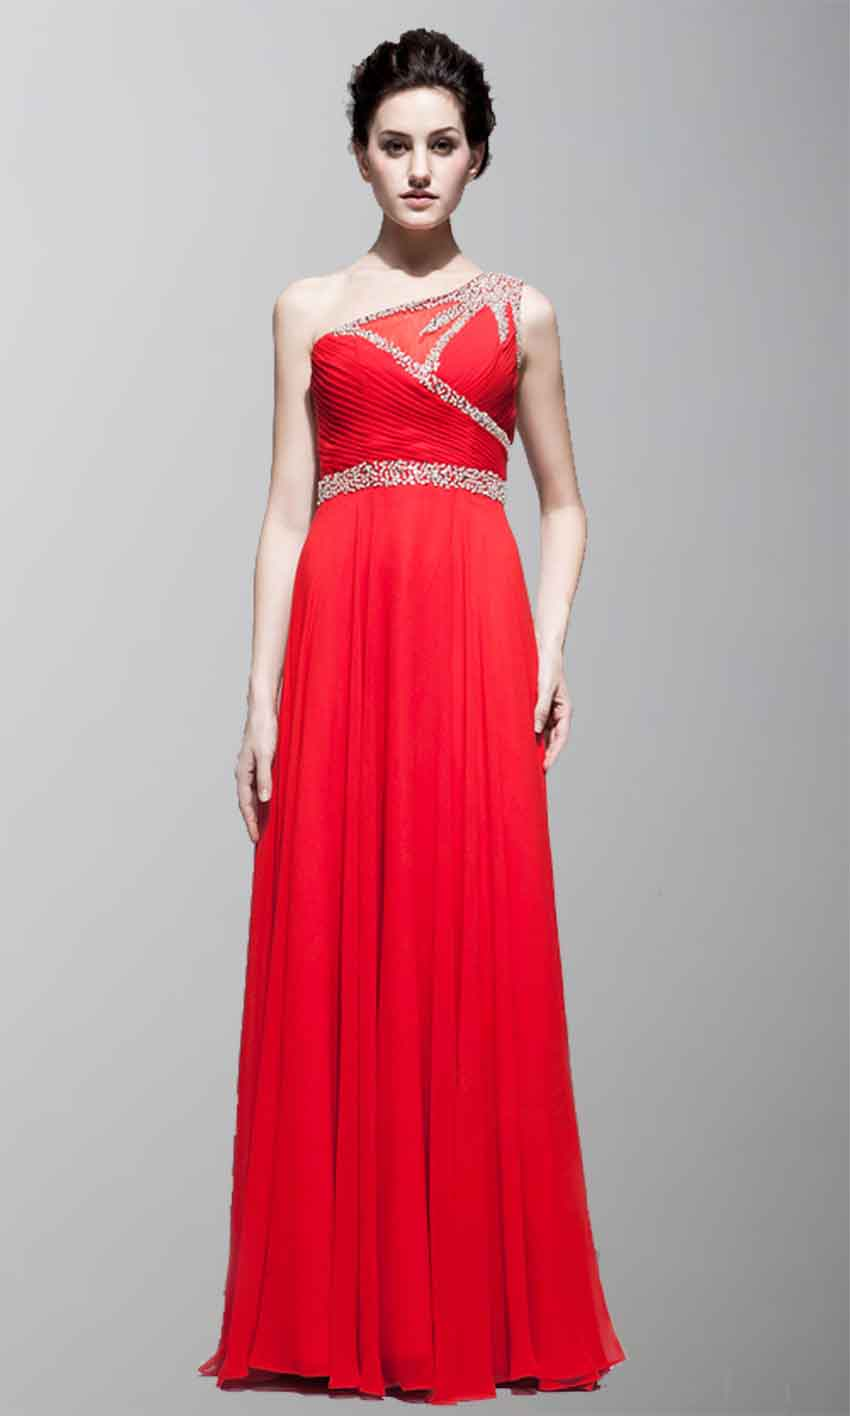 Vintage Beaded One Shoulder Red Long Prom Dresses KSP147 [KSP147] - £100.00 : Cheap Prom Dresses Uk, Bridesmaid Dresses, 2014 Prom & Evening Dresses, Look for cheap elegant prom dresses 2014, cocktail gowns, or dresses for special occasions? kissprom.co.uk offers various bridesmaid dresses, evening dress, free shipping to UK etc.